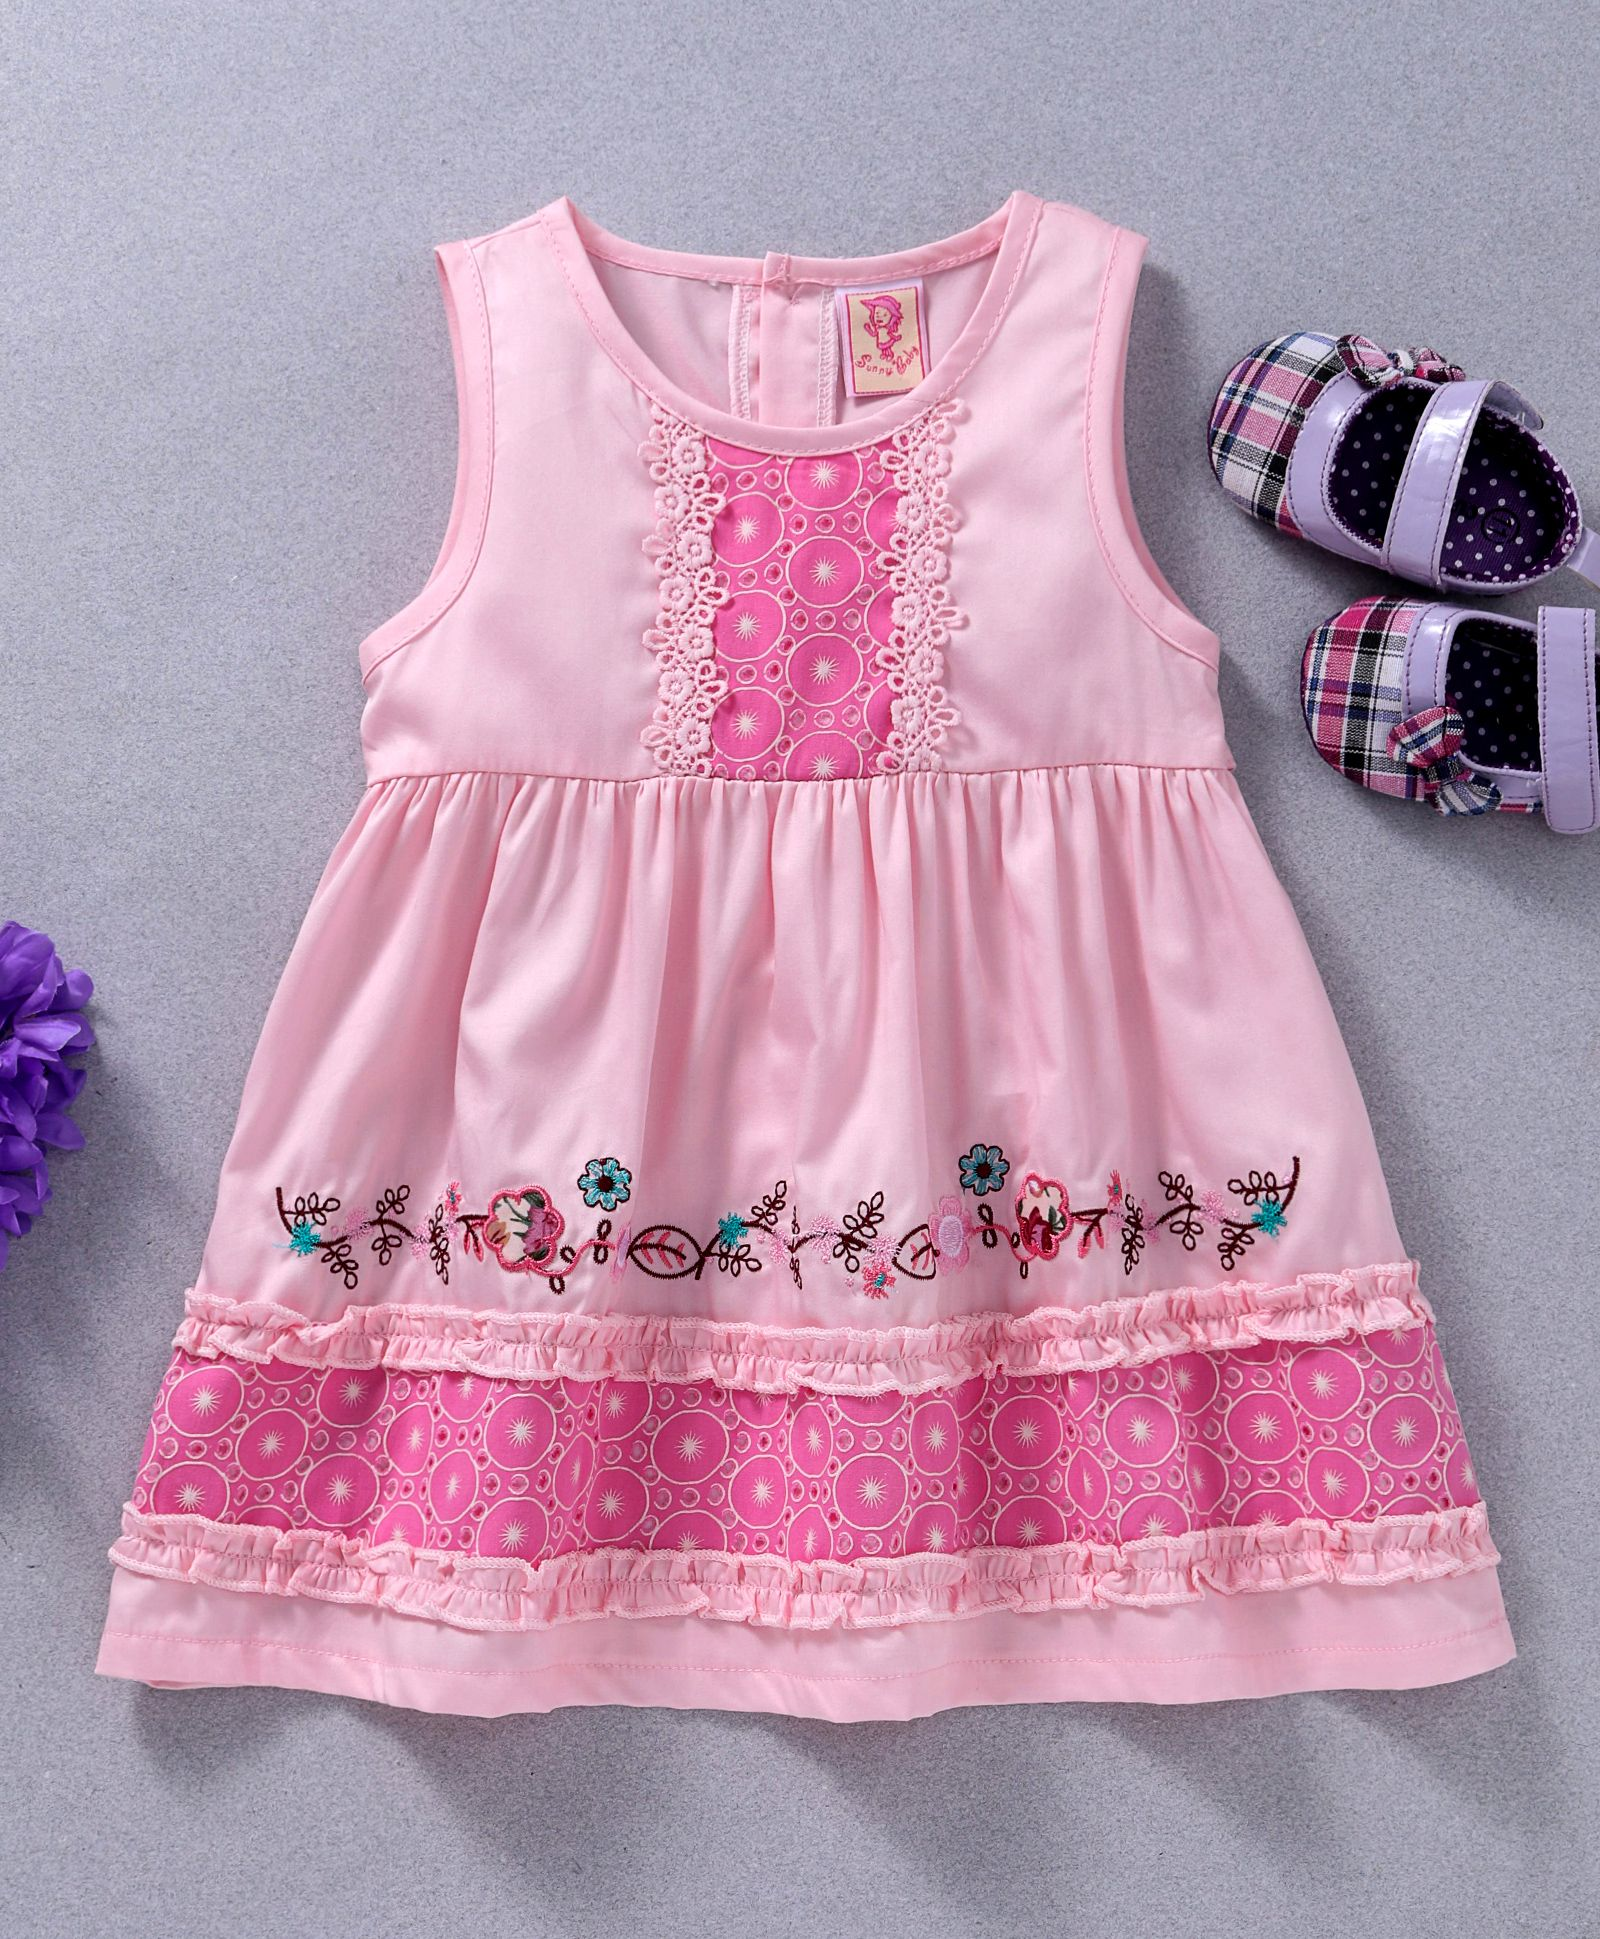 4dcc44d94d15 Sunny Baby Flower Embroidery & Lace Trimming Sleeveless Dress - Pink